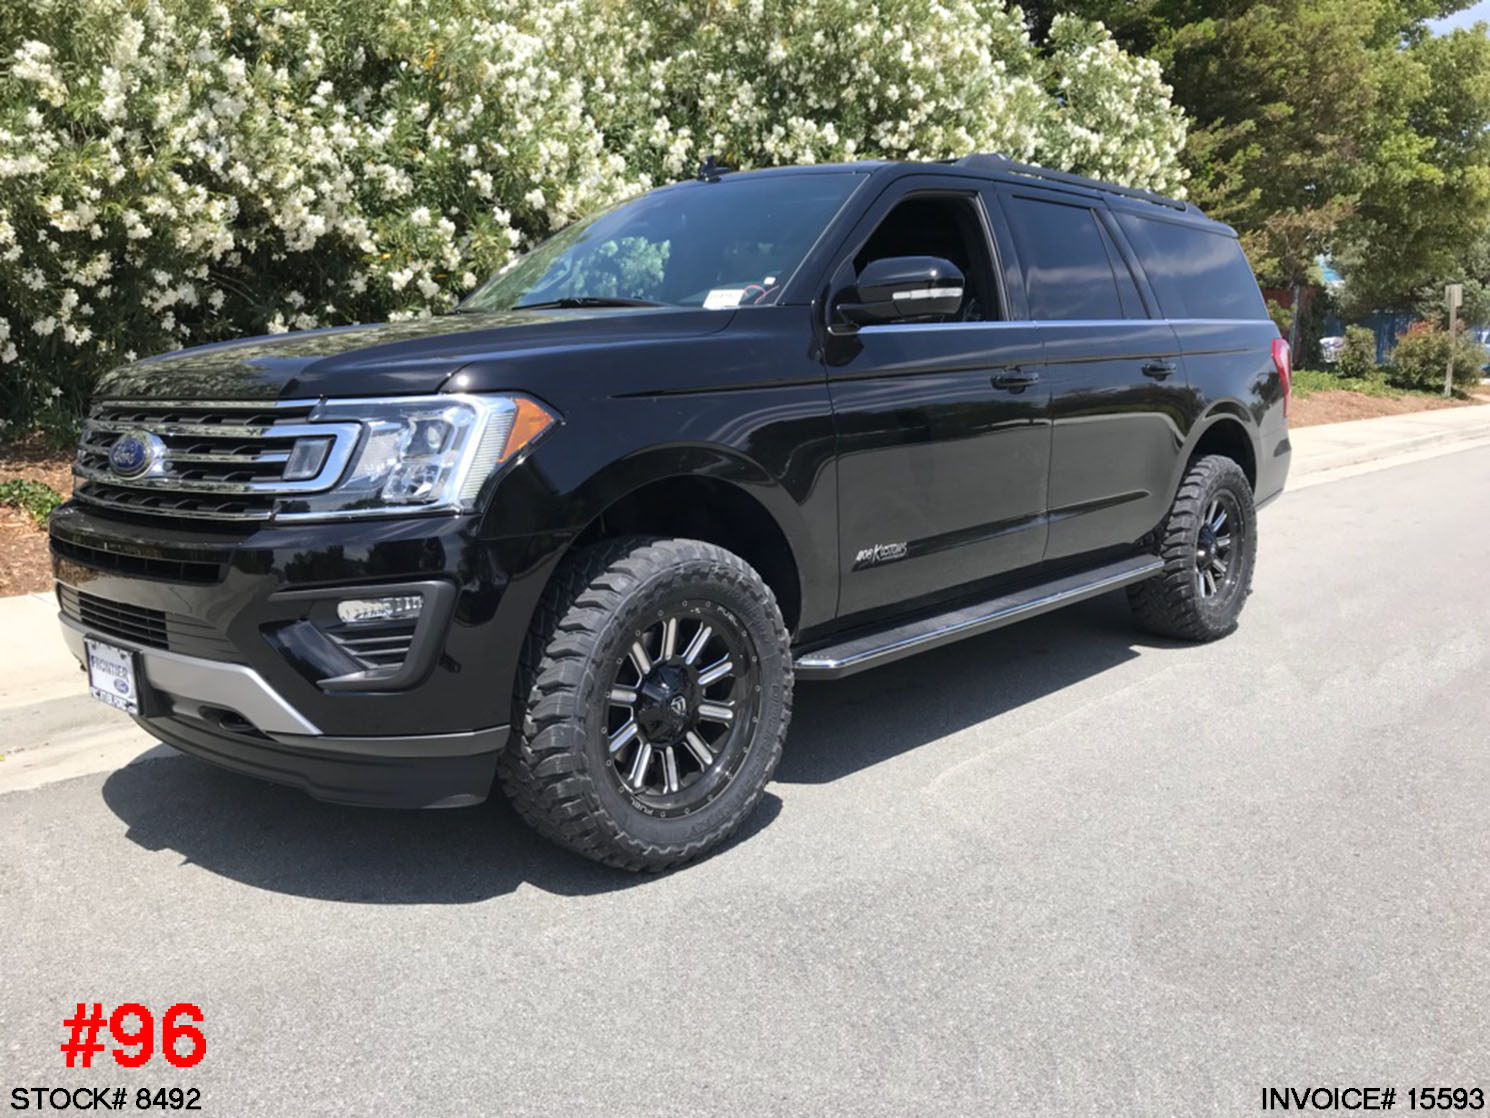 2018 ford expedition xlt 8492 truck and suv parts warehouse. Black Bedroom Furniture Sets. Home Design Ideas